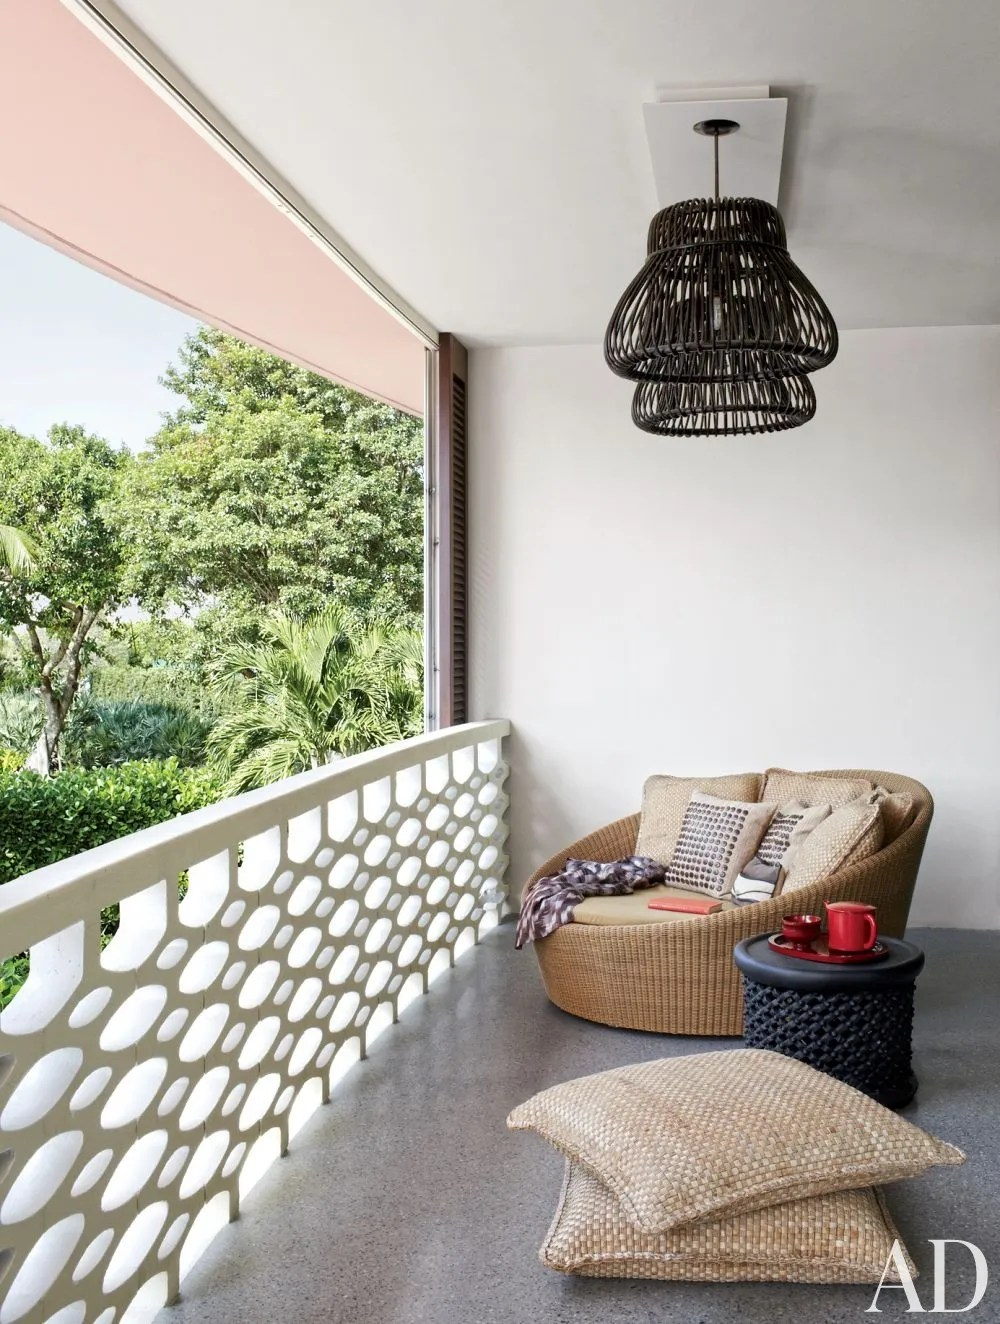 14 Cozy Balcony Ideas And Decor Inspiration